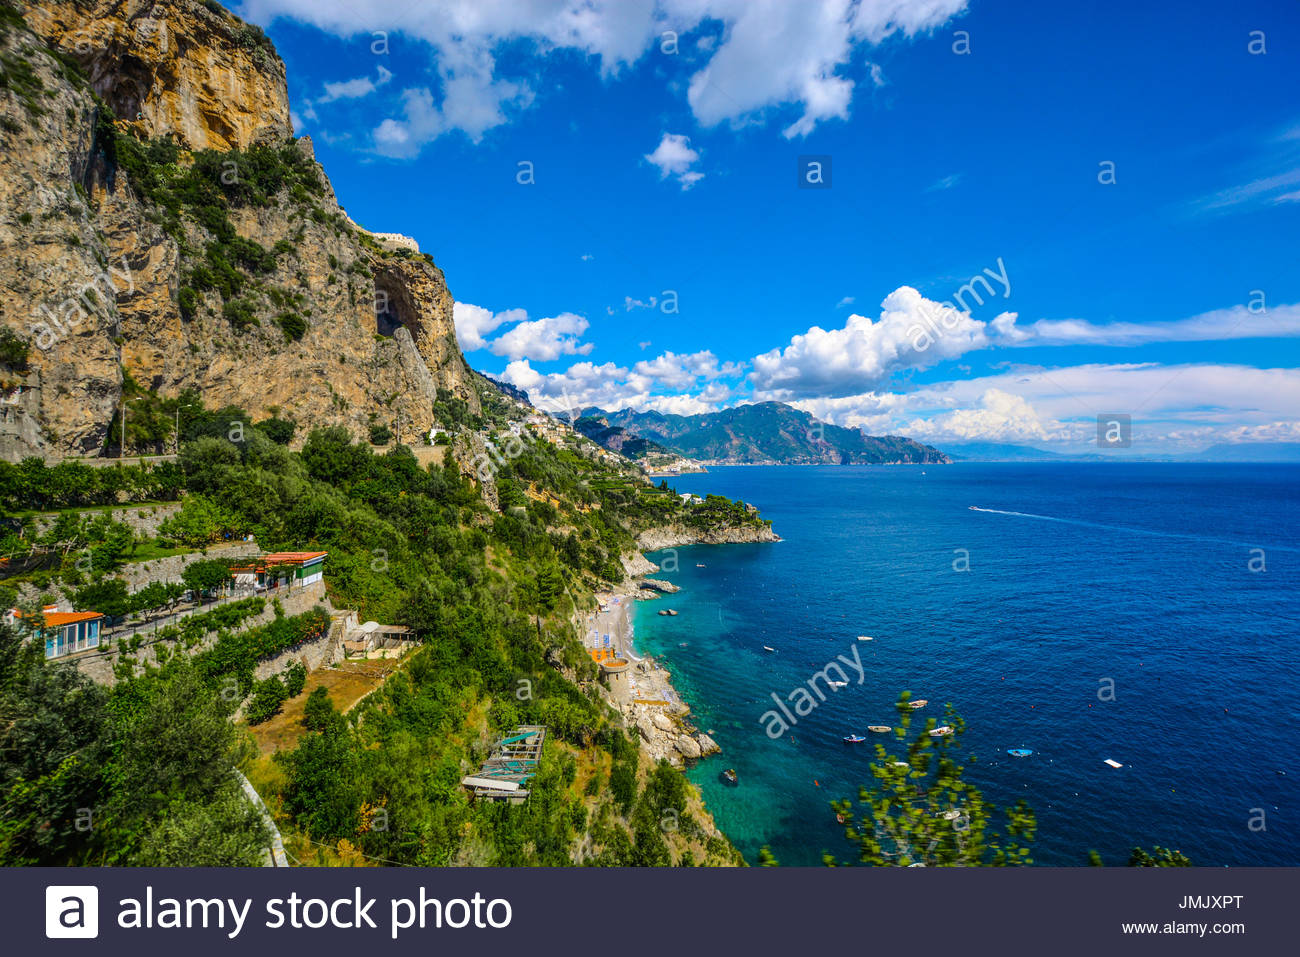 The Amalfi Coast near Positano and Sorrento on a warm summer afternoon with boats in the water and homes and resorts on the hillside - Stock Image